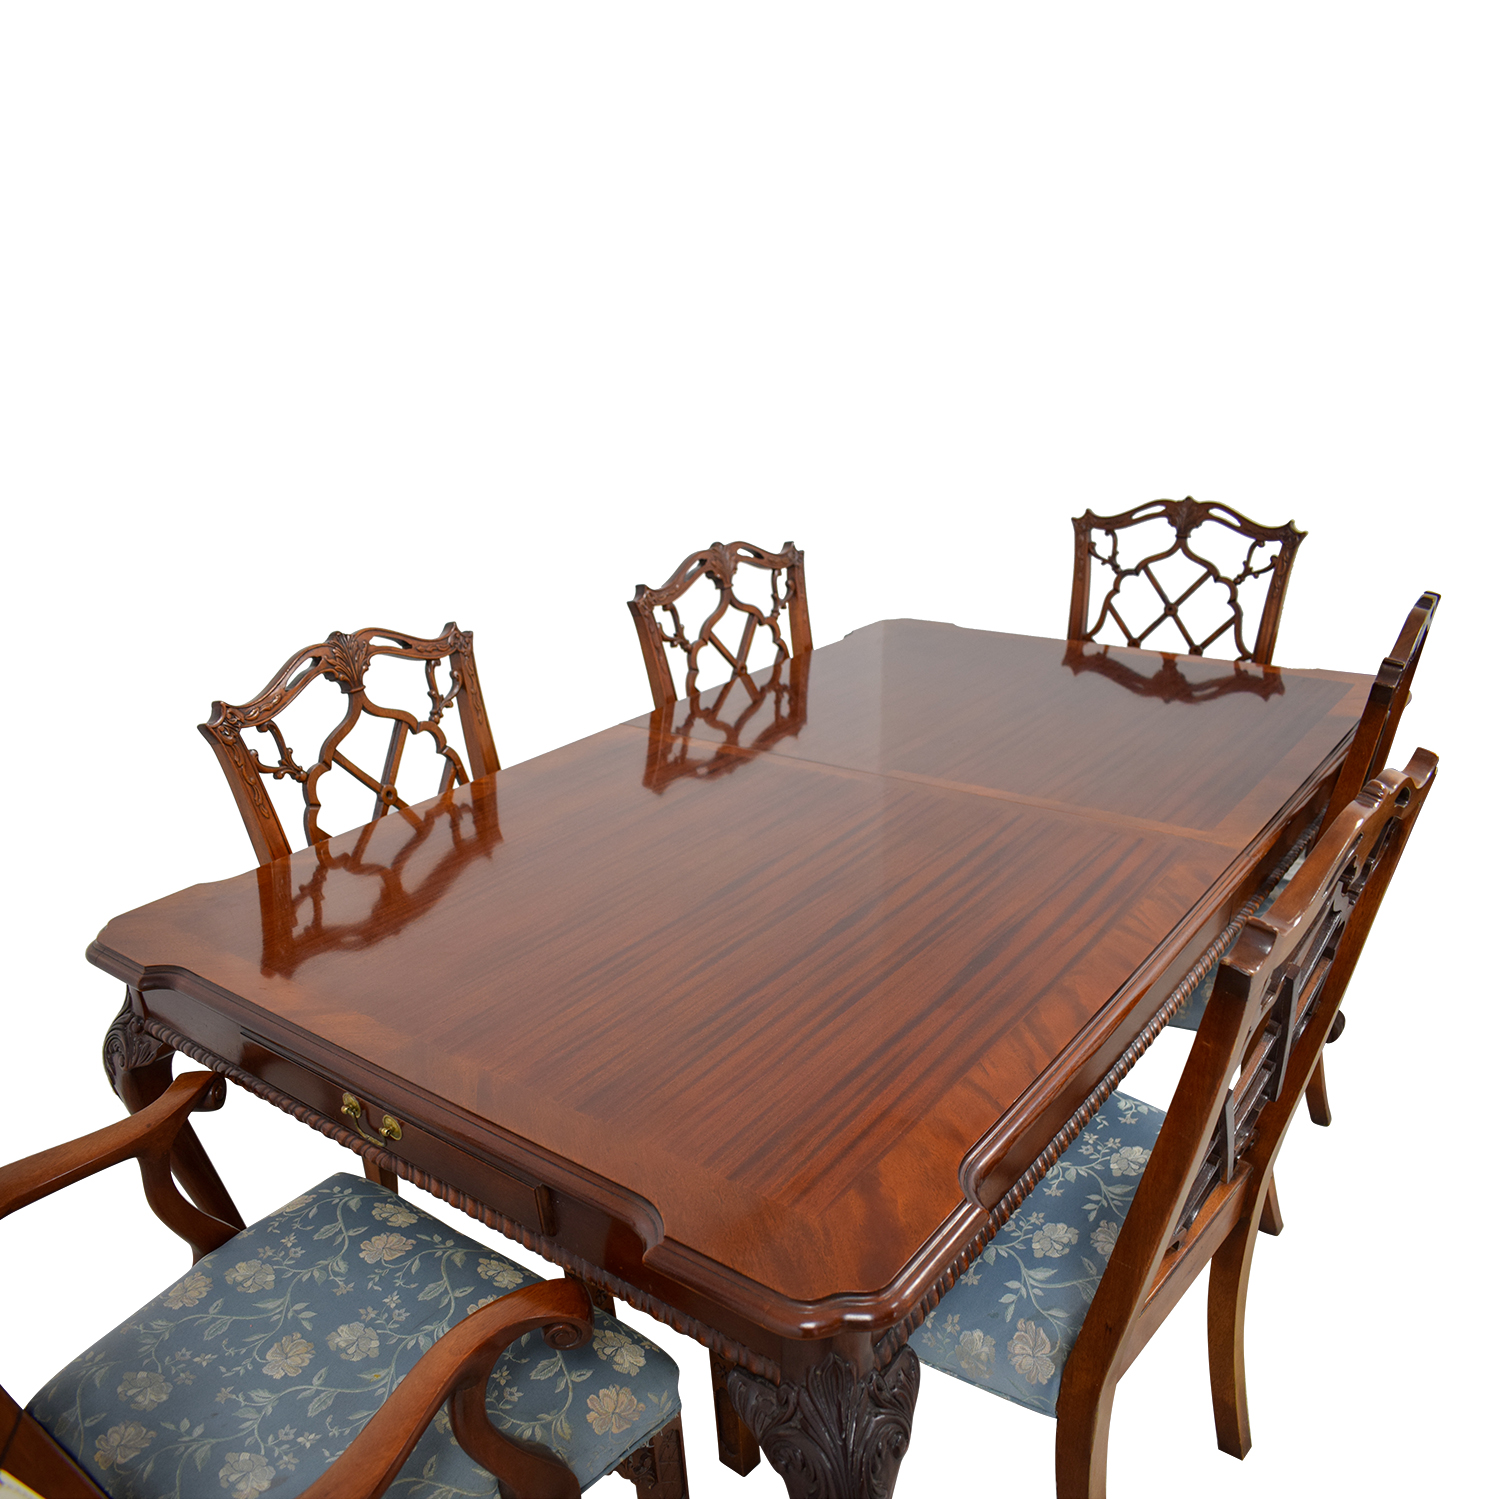 Awe Inspiring 90 Off Century Dining Table With Extension Leaf And Chelsea Custom Upholstered Chairs Tables Unemploymentrelief Wooden Chair Designs For Living Room Unemploymentrelieforg